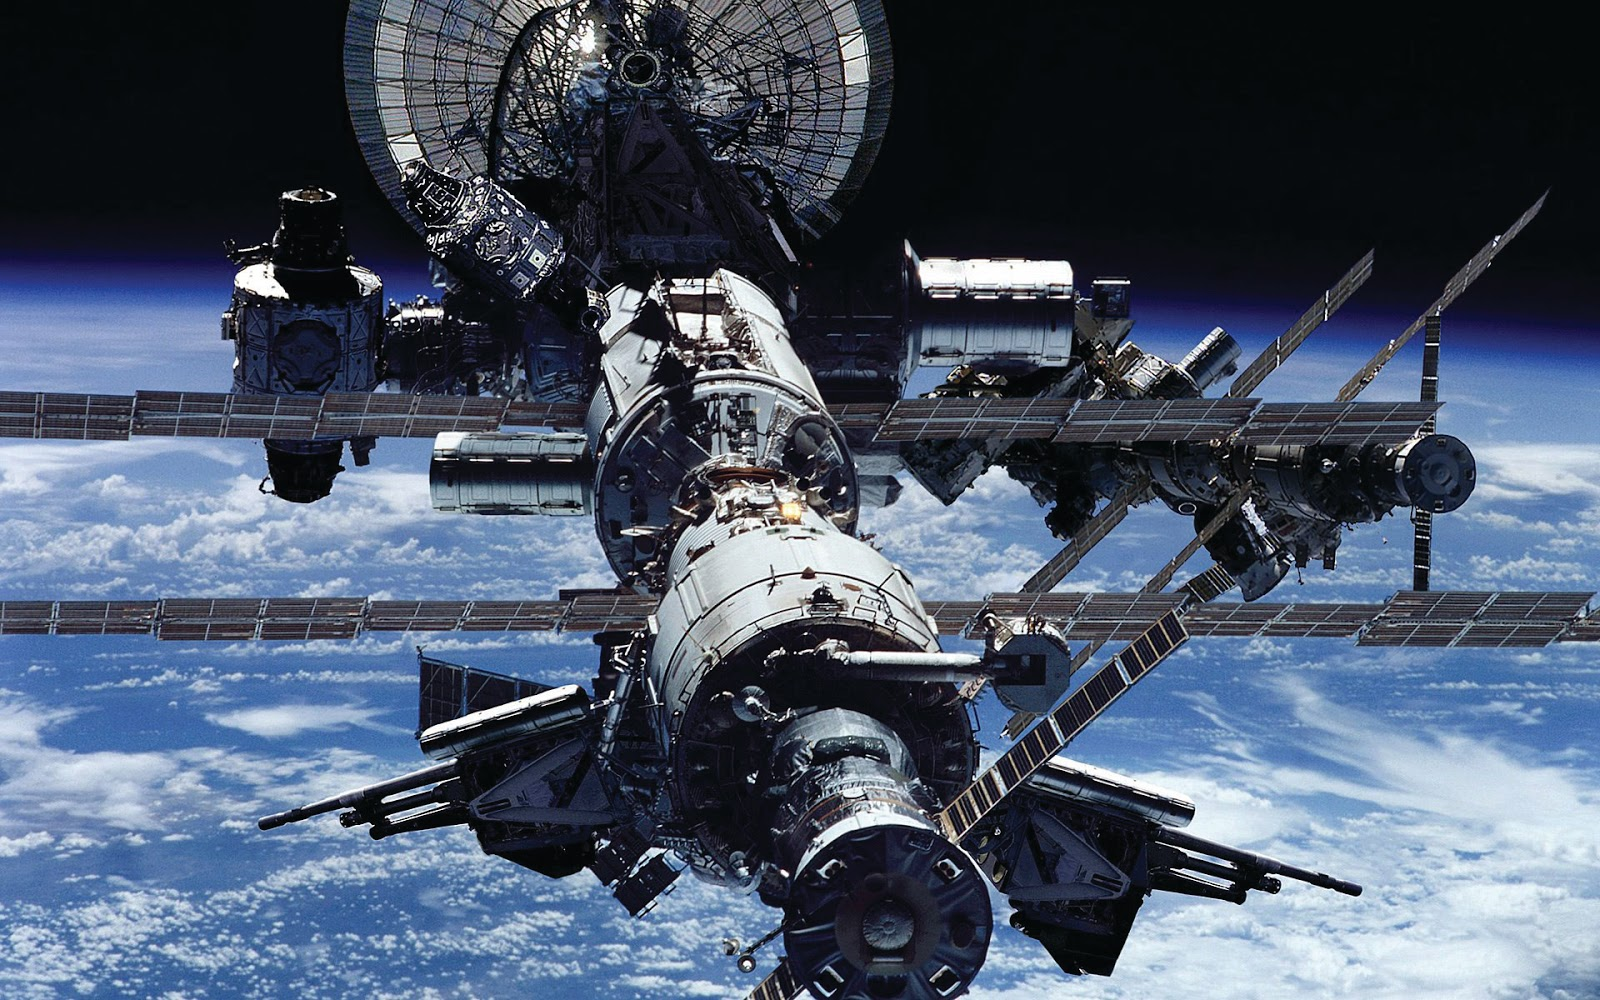 Geoff's blogs: The International Space Station, I.S.S.